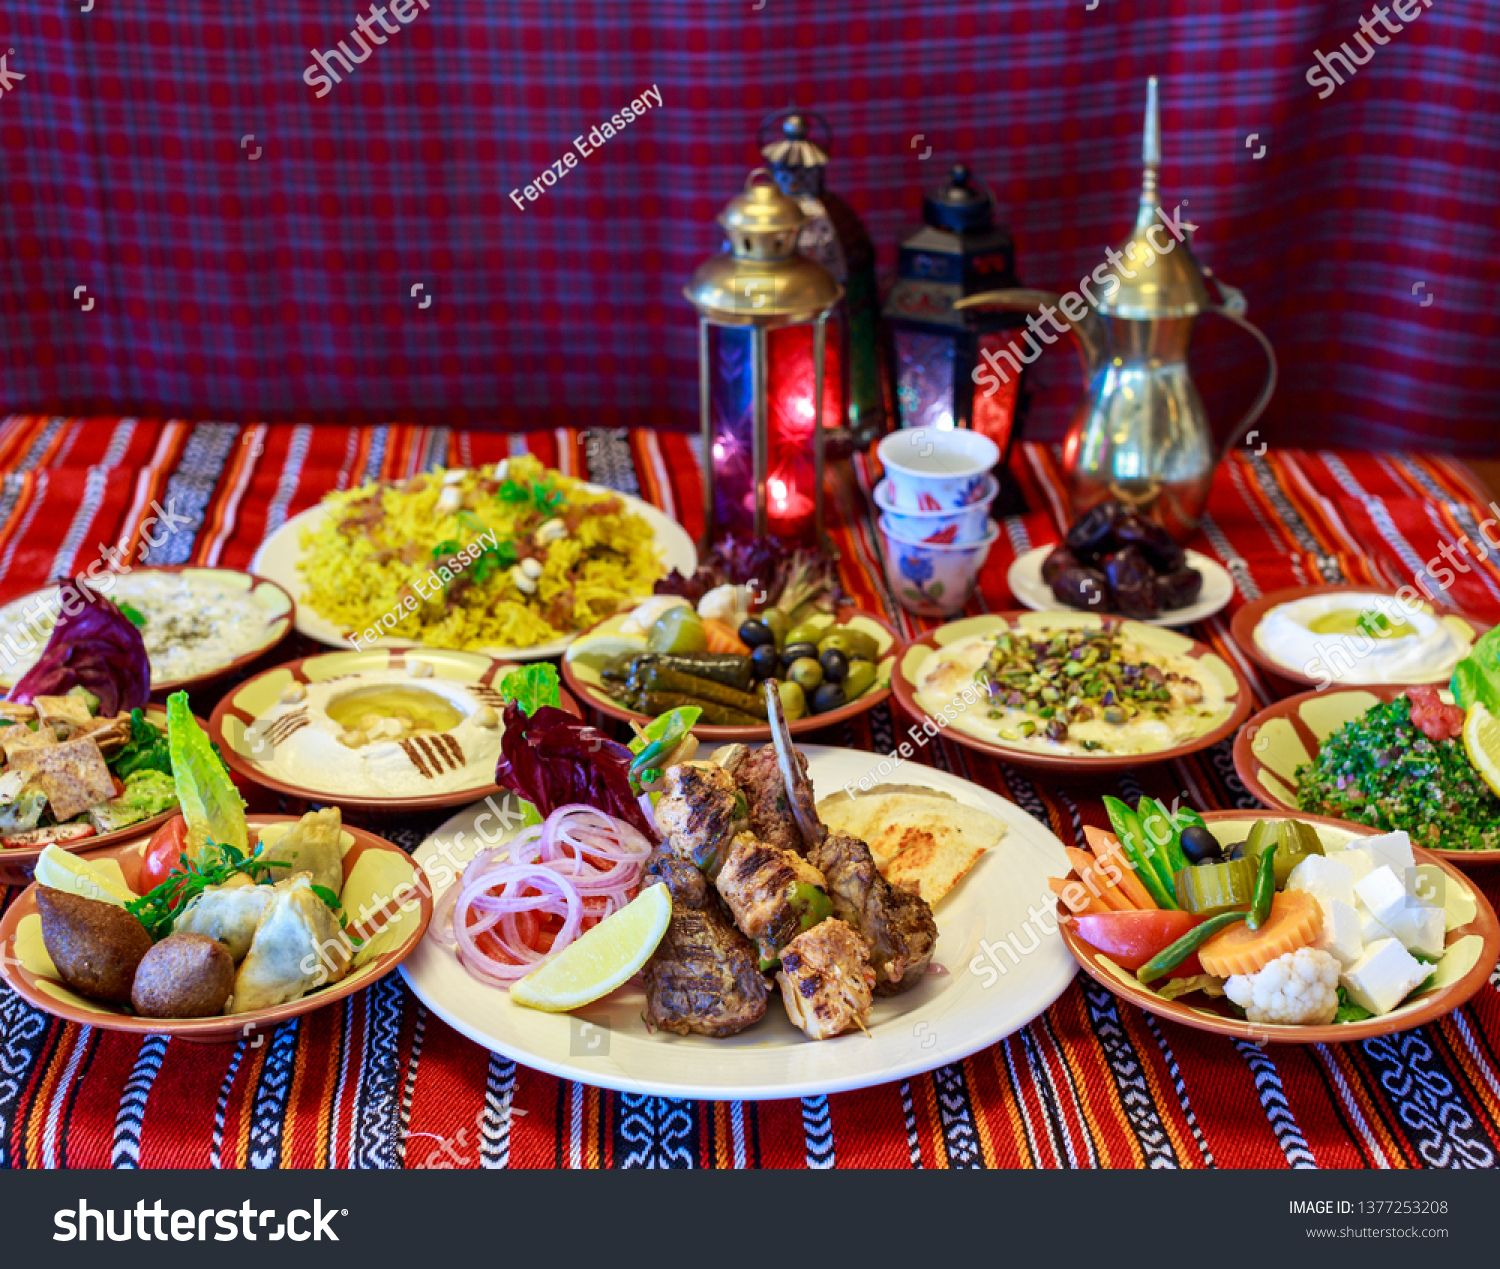 Ramadan Iftar Buffet Food Served Royalty Free Images Photo In 2020